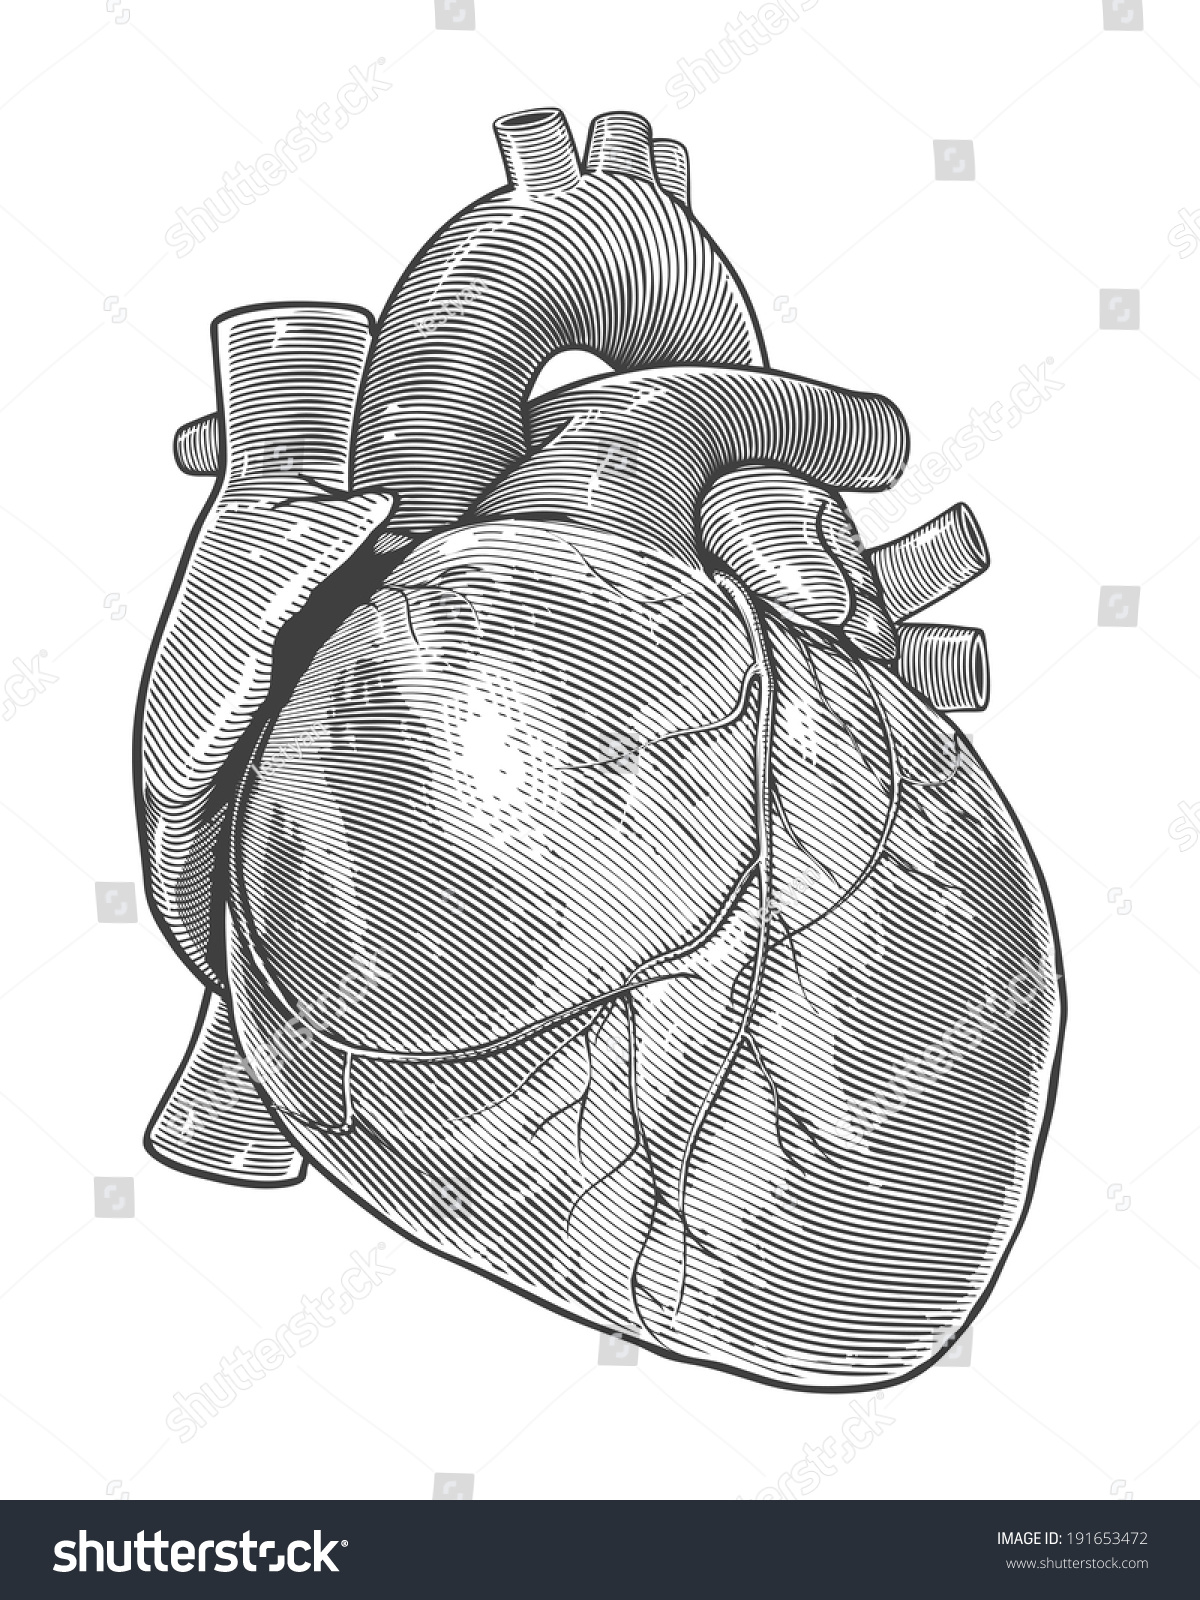 human heart vintage engraving style vector stock vector 191653472, Muscles